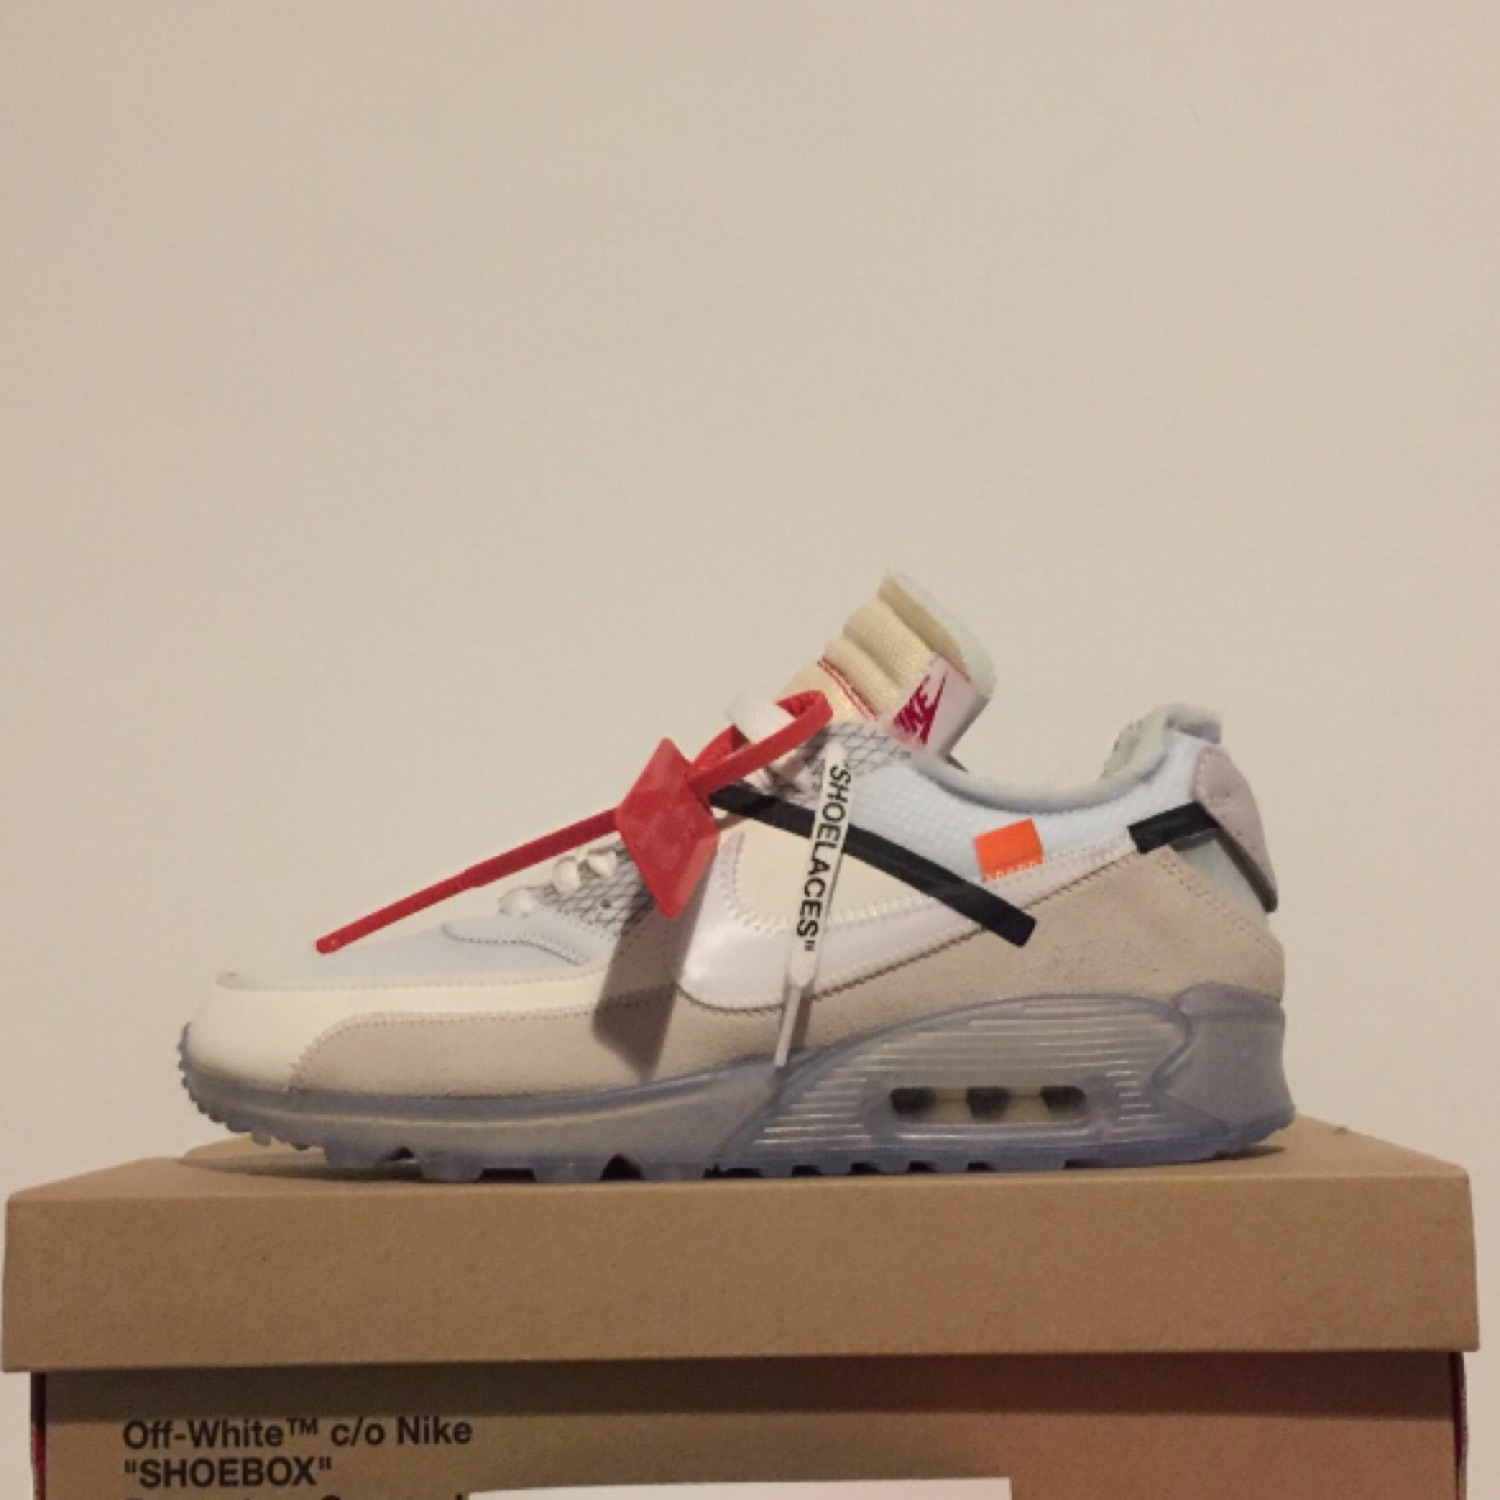 reputable site fcbb6 4b1b1 Off-White X Nike Air Max 90 Virgil Abloh